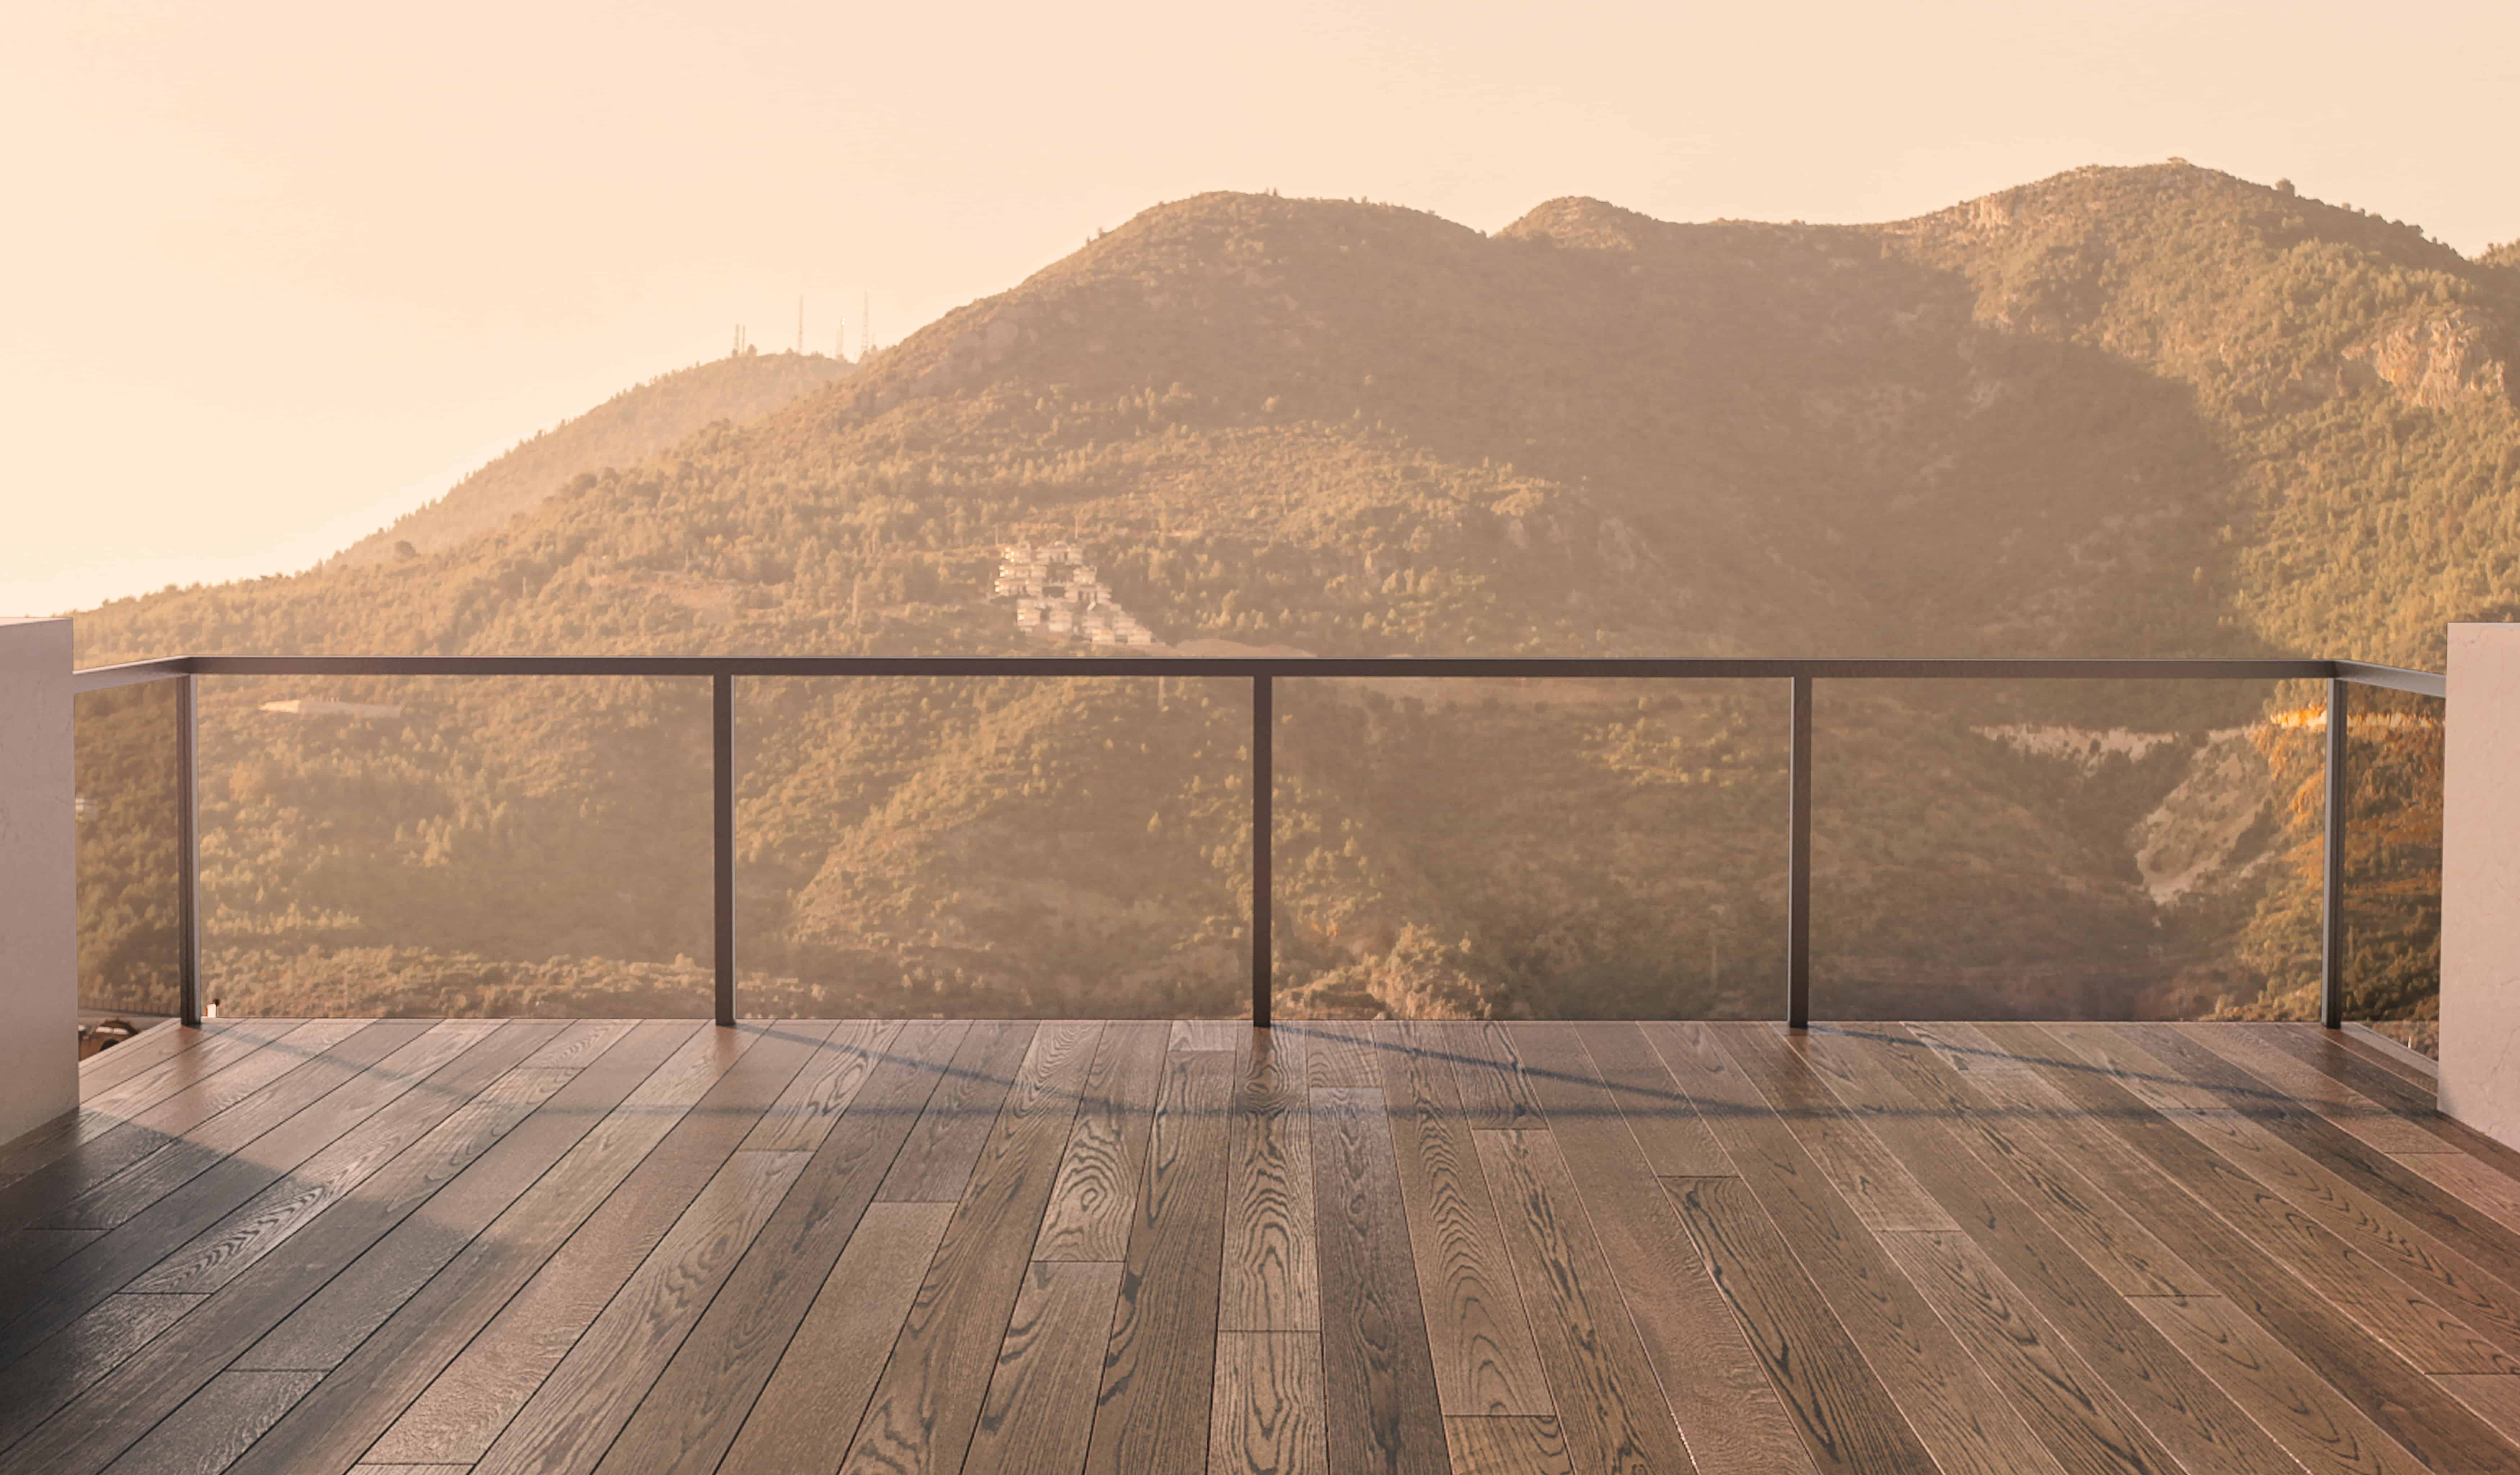 Balcony view of mountains. Landscape. Sunny Day. Terrace with a